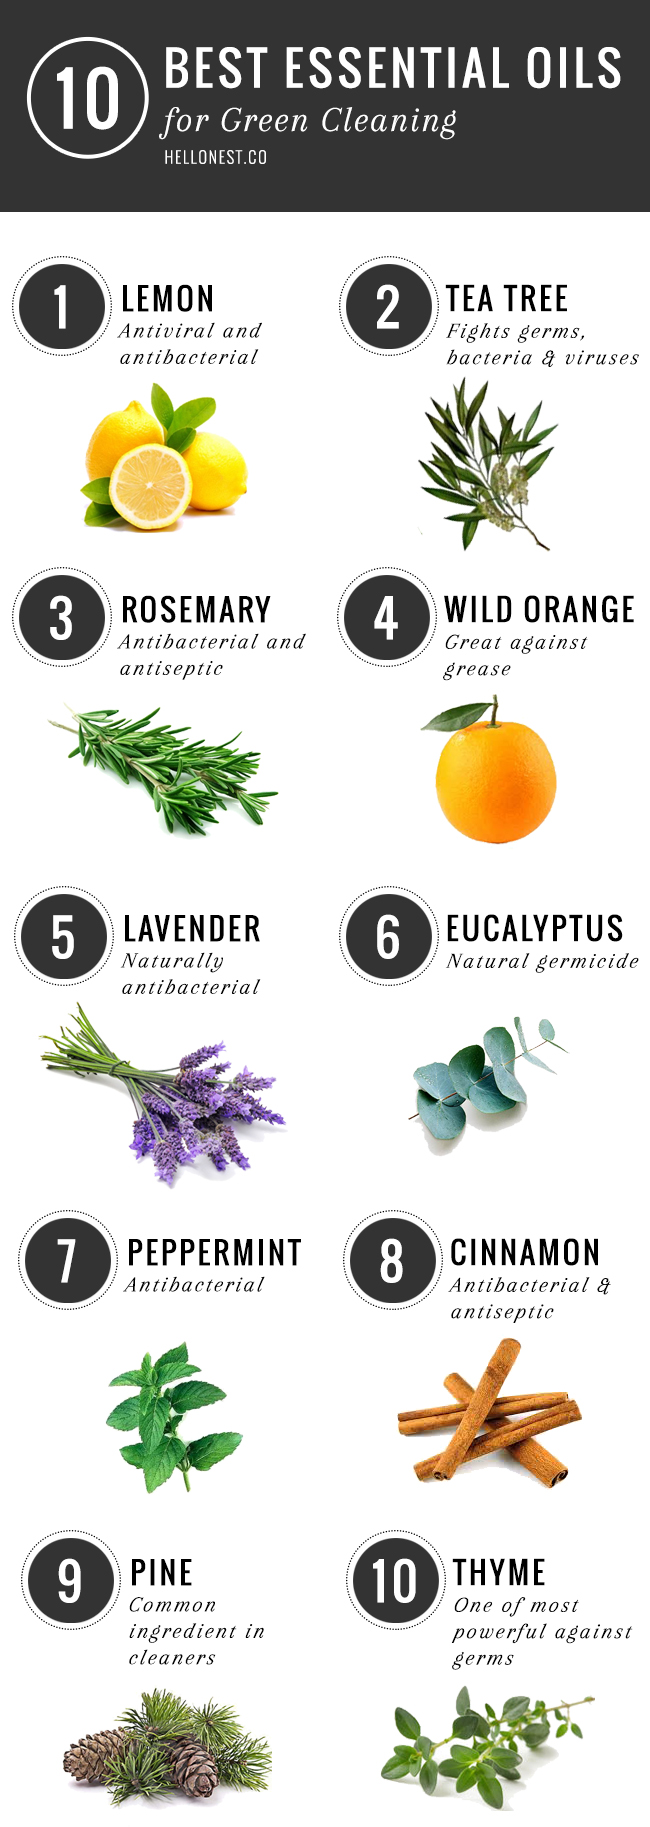 10 Best Essential Oil for Green Cleaning